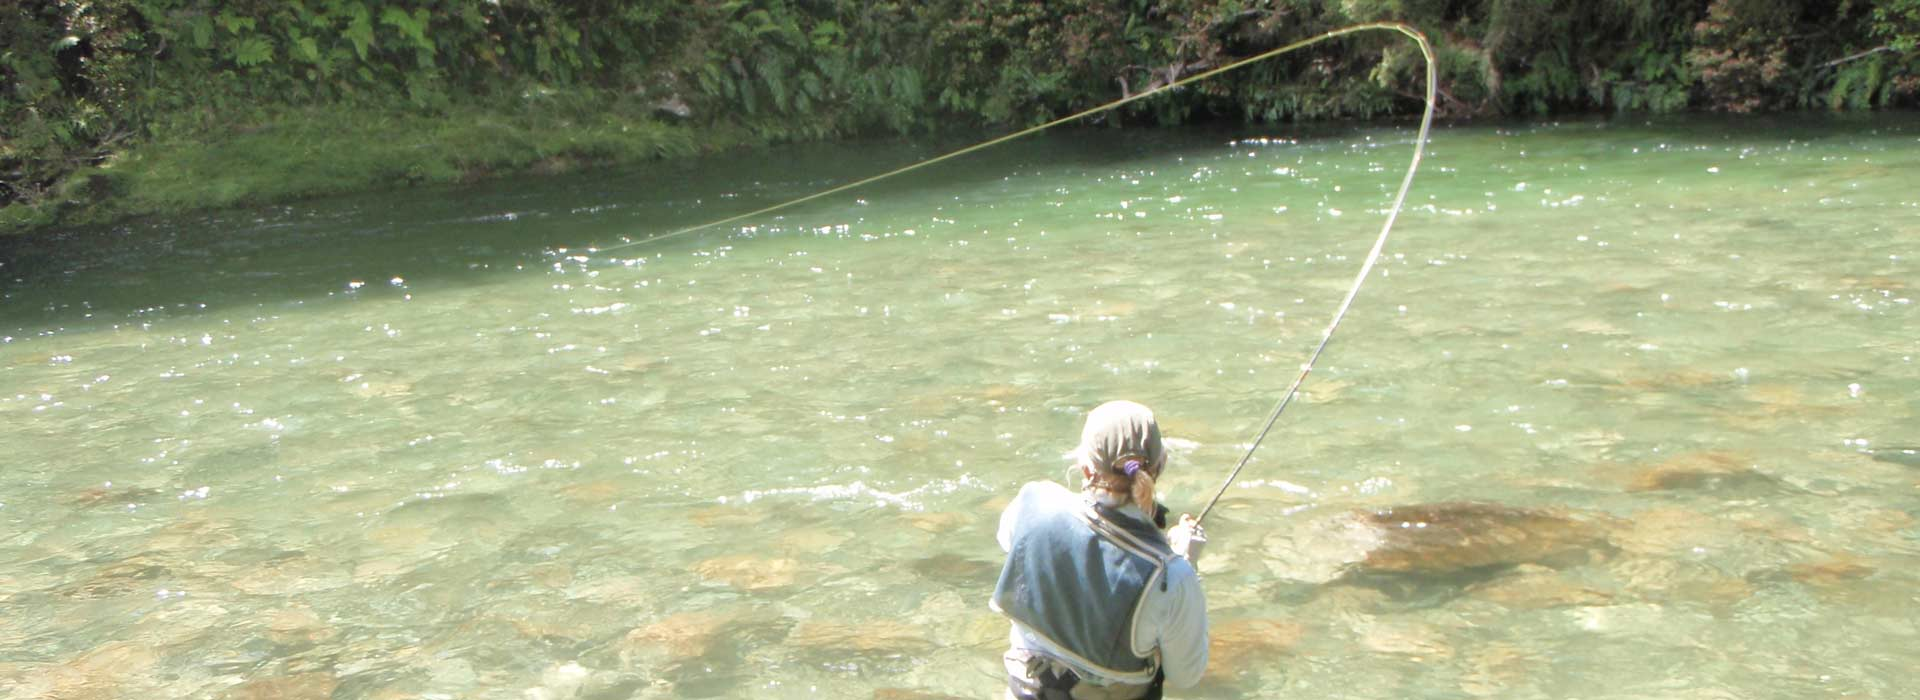 Trout fishing guide for the top of New Zealand's South Island